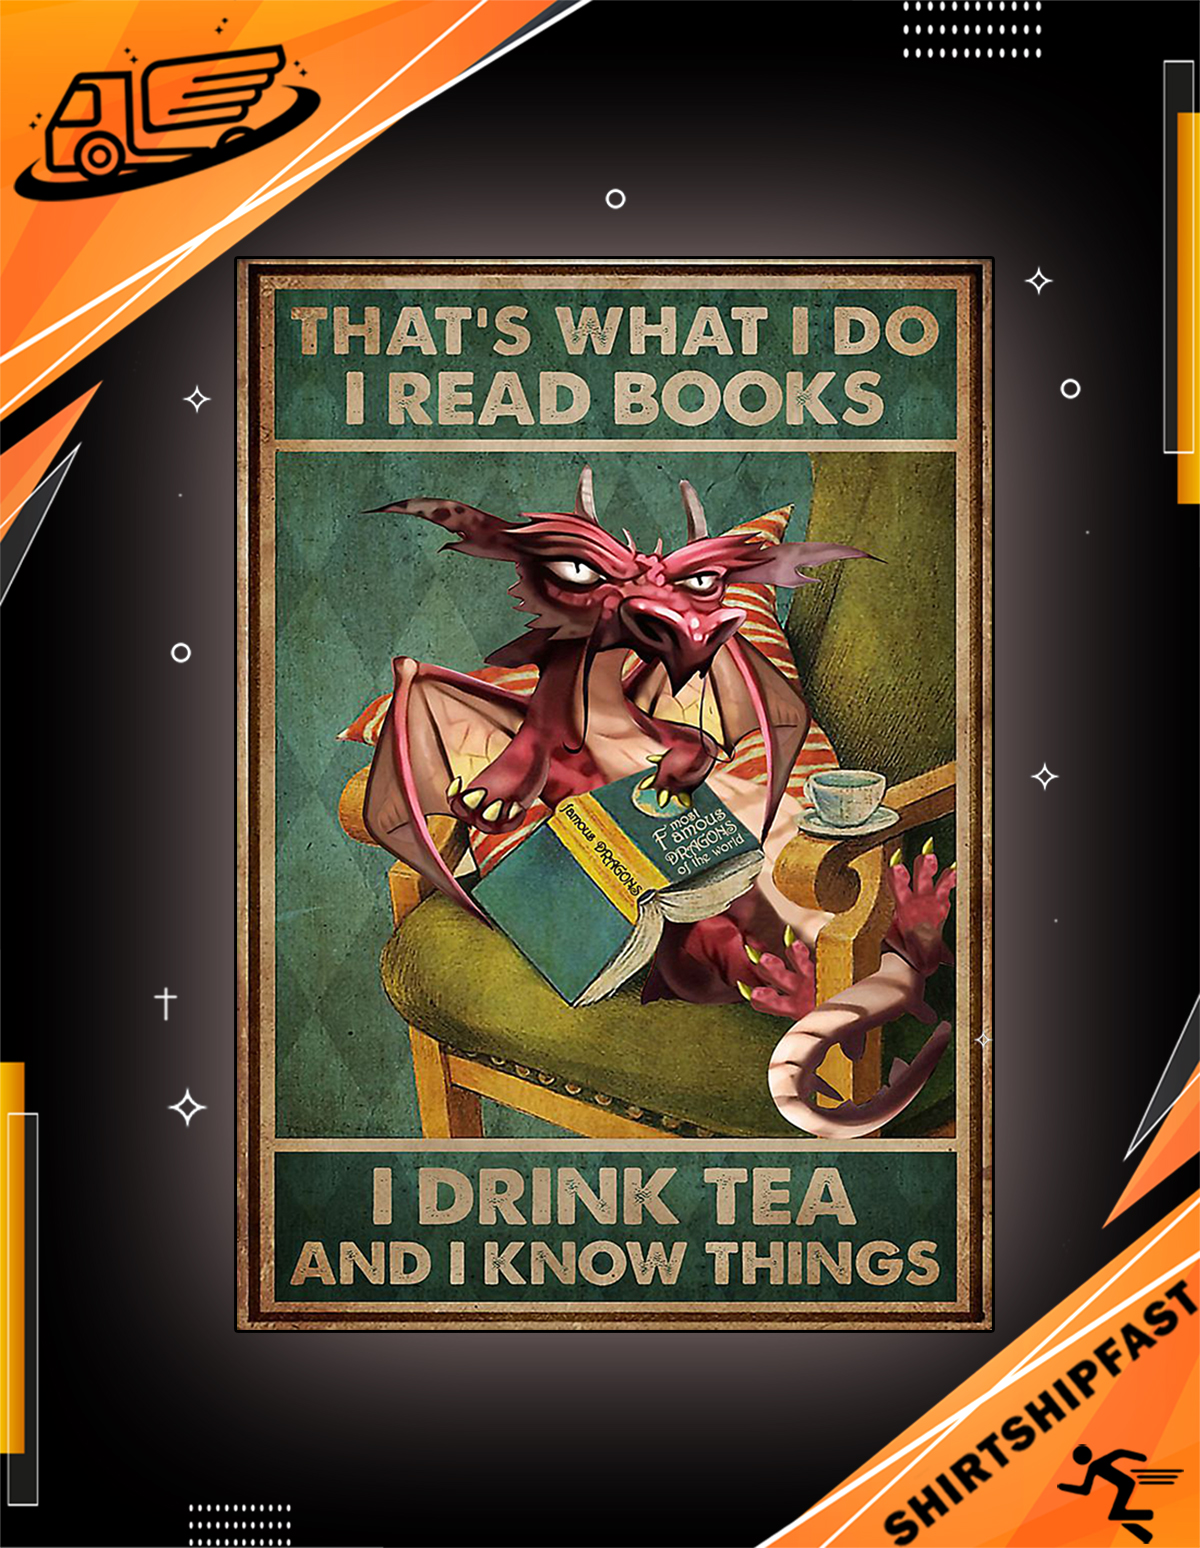 Dragon That's what I do I read books I drink tea and I know things poster - Picture 2